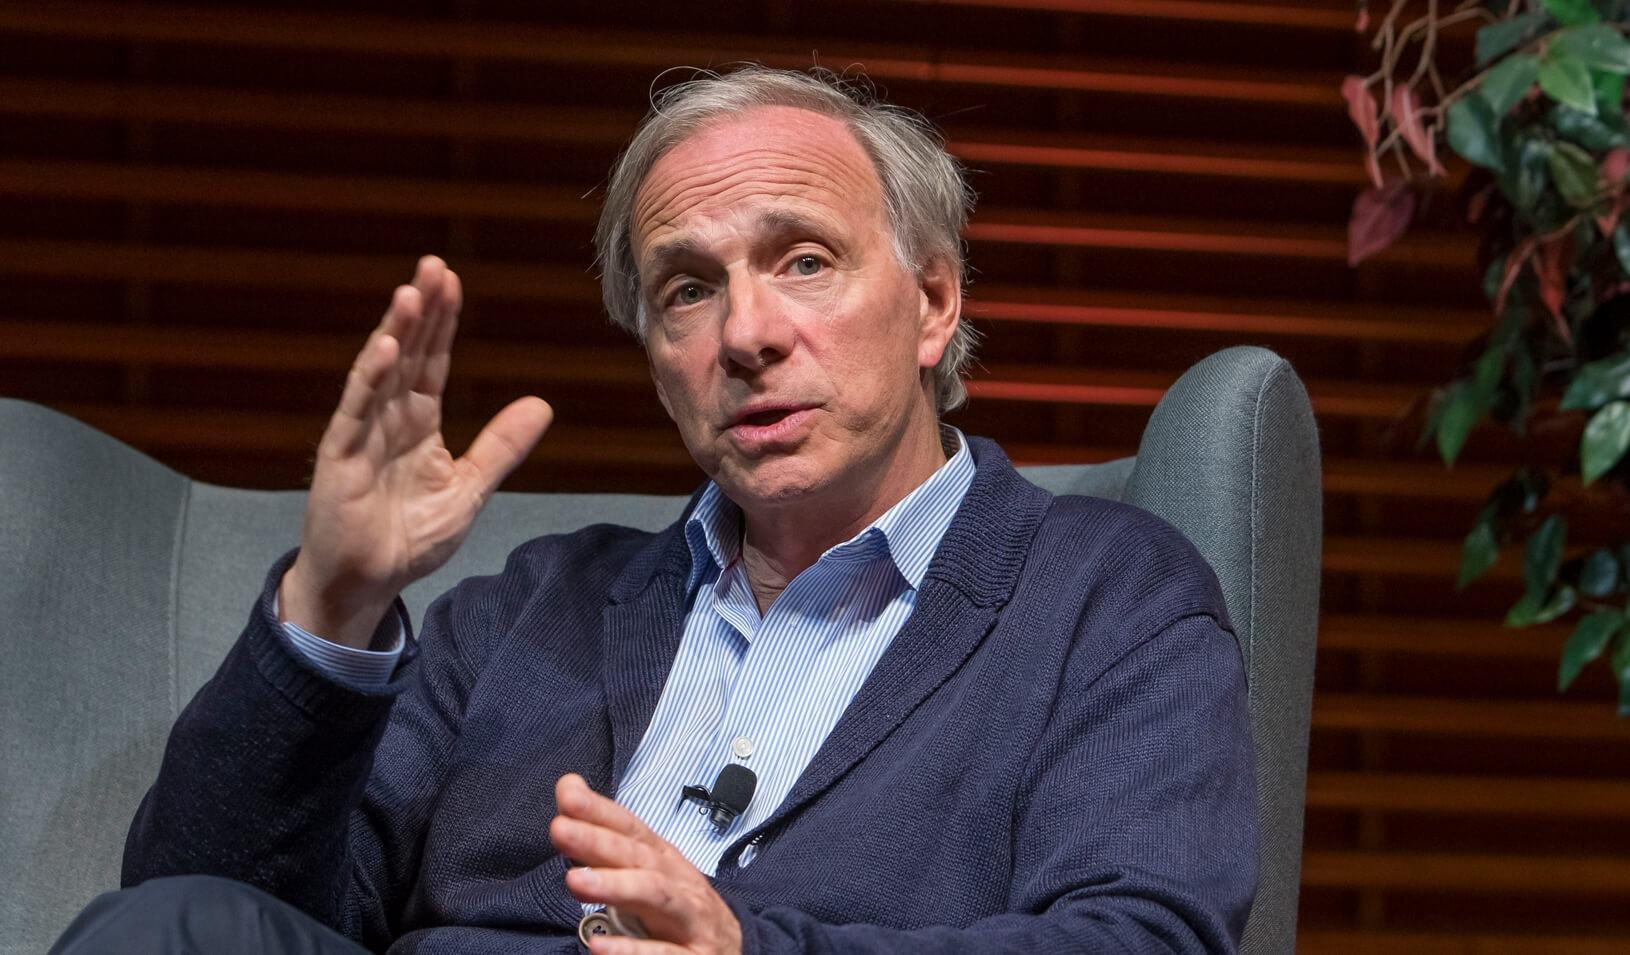 Hedge FUD manager: Ray Dalio says 'good probability' of a US Bitcoin ban